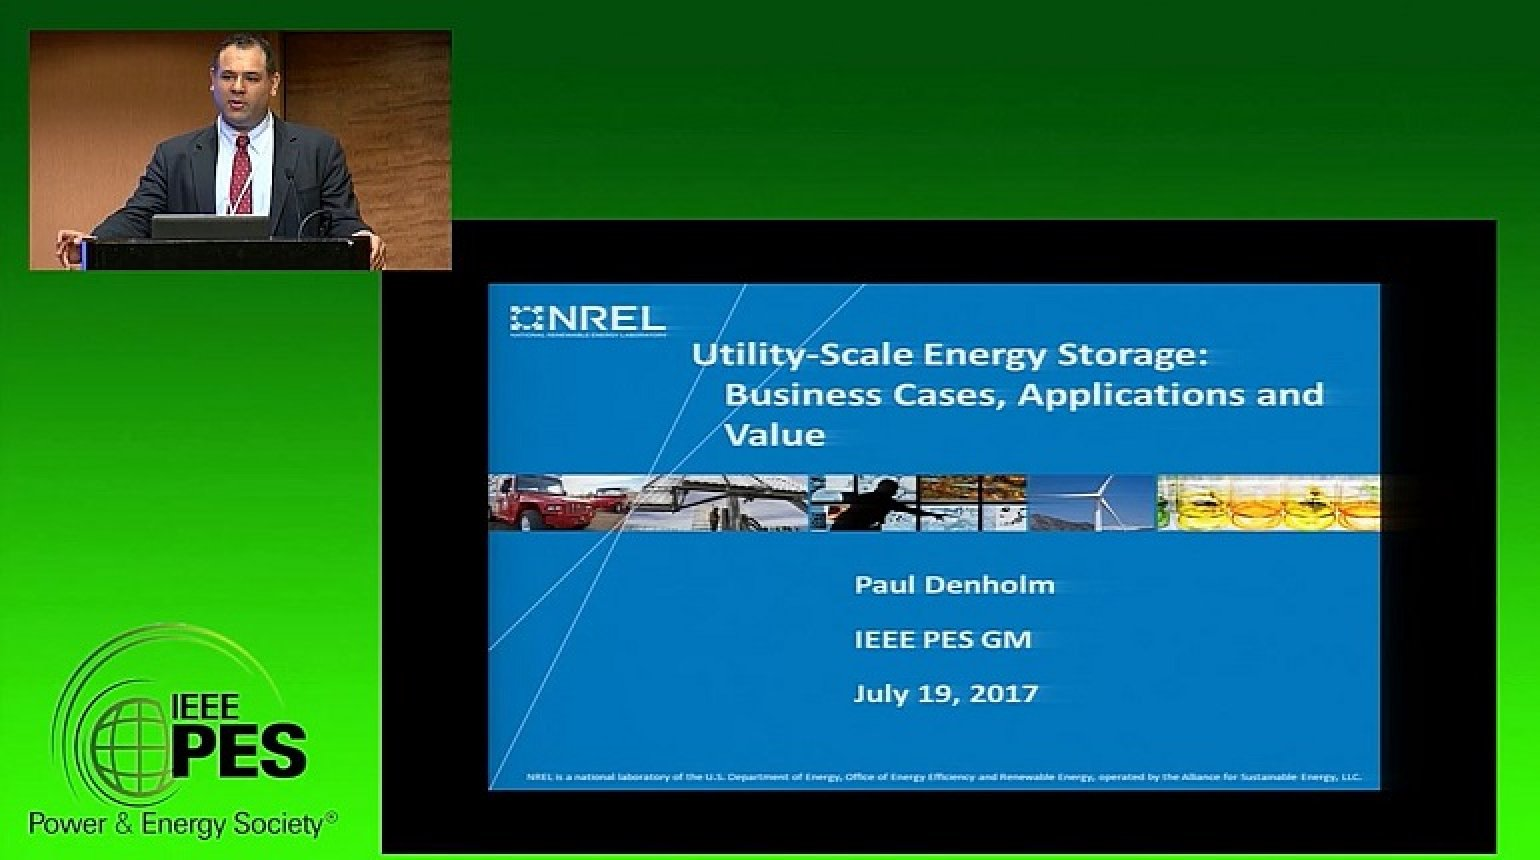 PES GM 2017 - Energy Storage Super Session